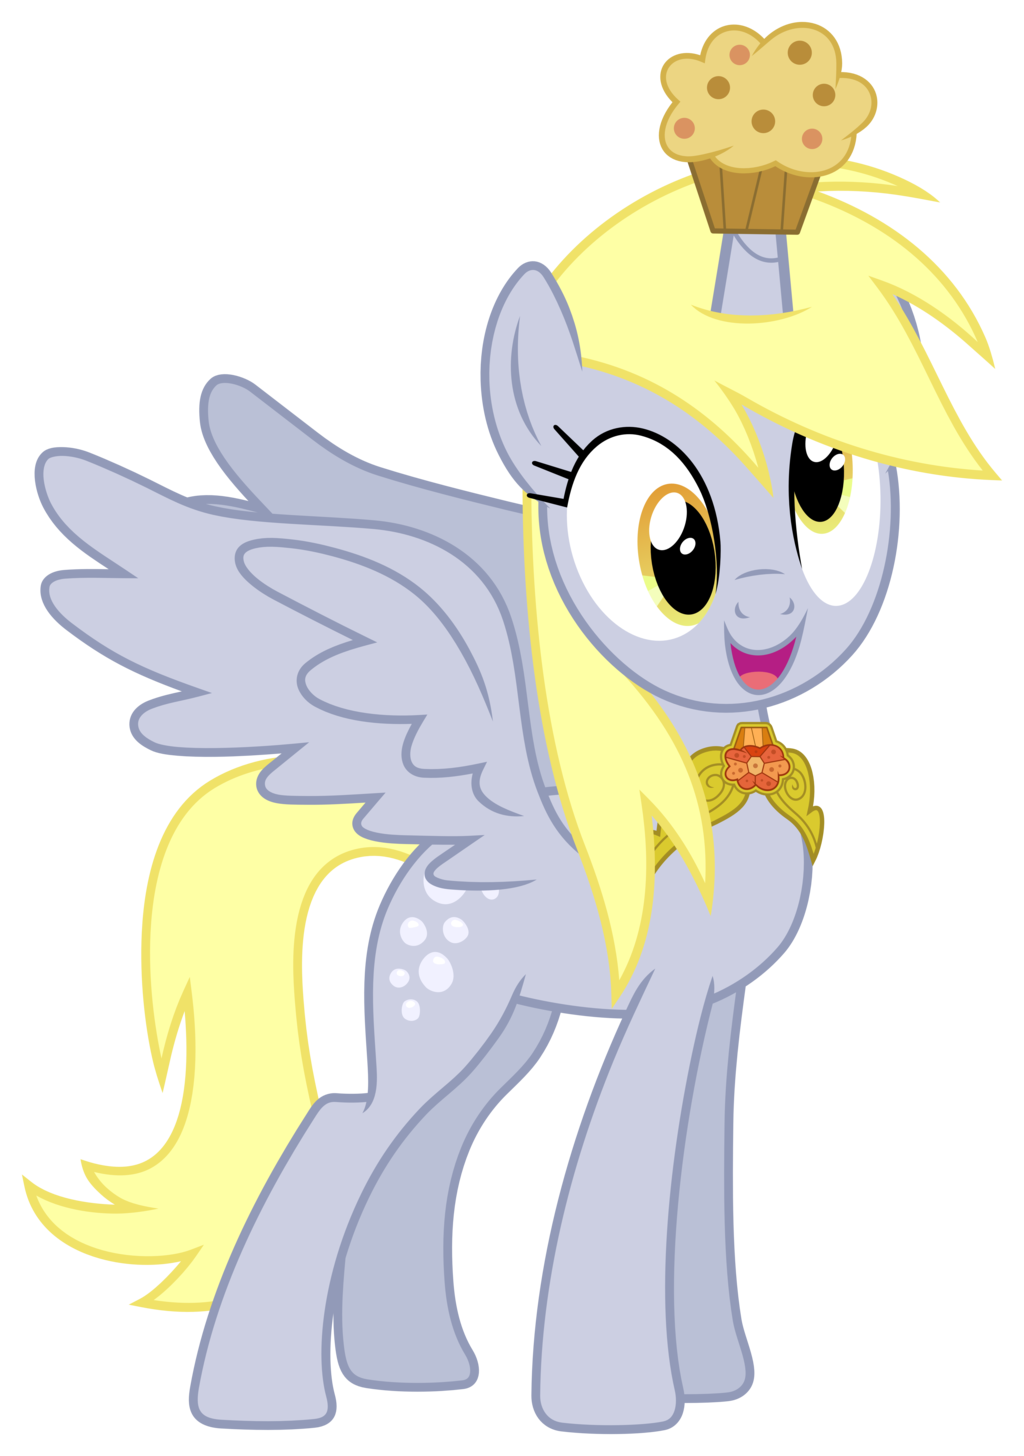 Mlp derpy the muffin. Muffins clipart little